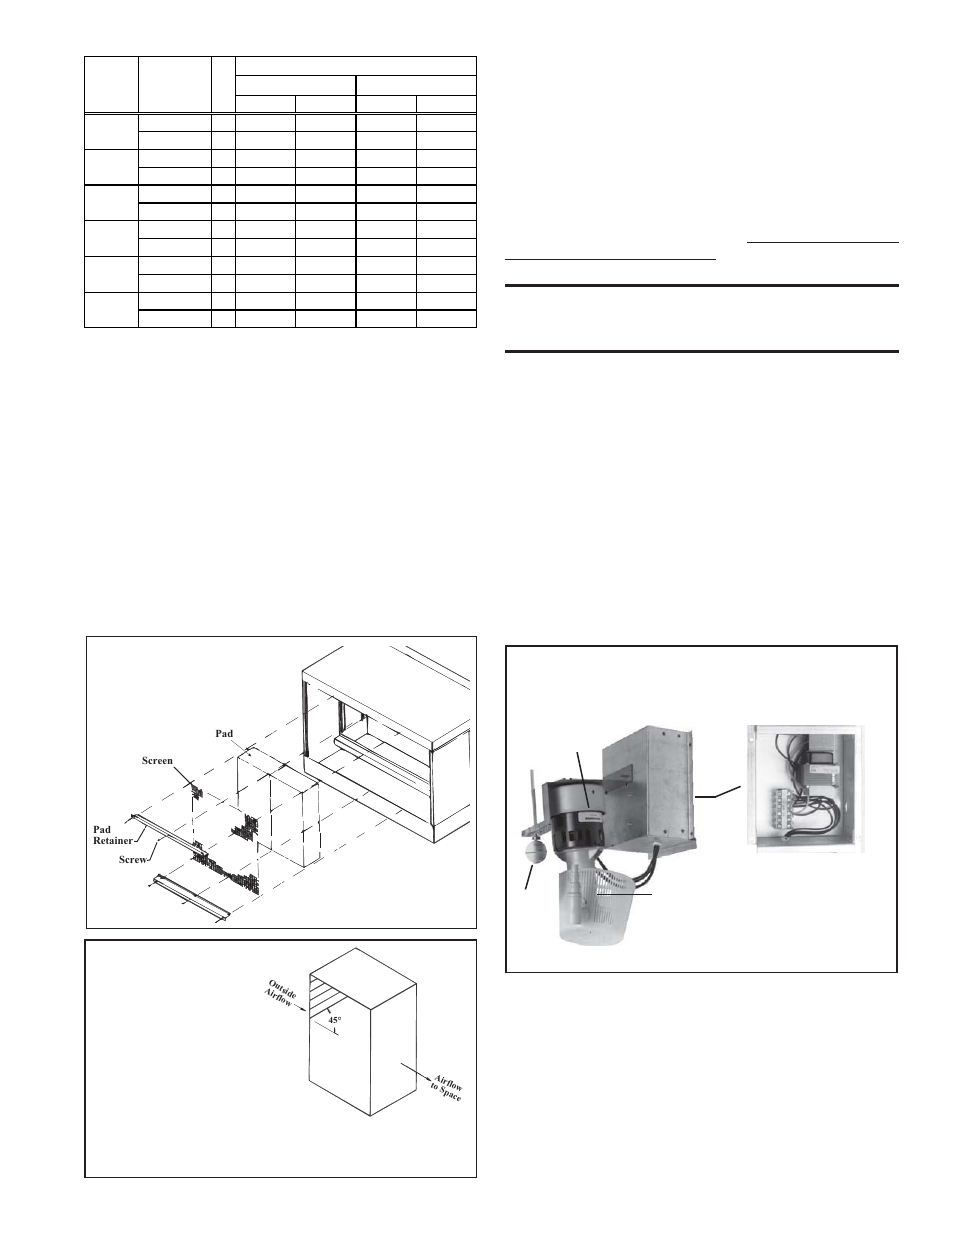 Optional Dampers And Controls See Wiring Diagram Supplied With Unit No Pump Swamp Cooler Motor Instructions For Replacing Media Pads Reznor Xe Installation Manual User